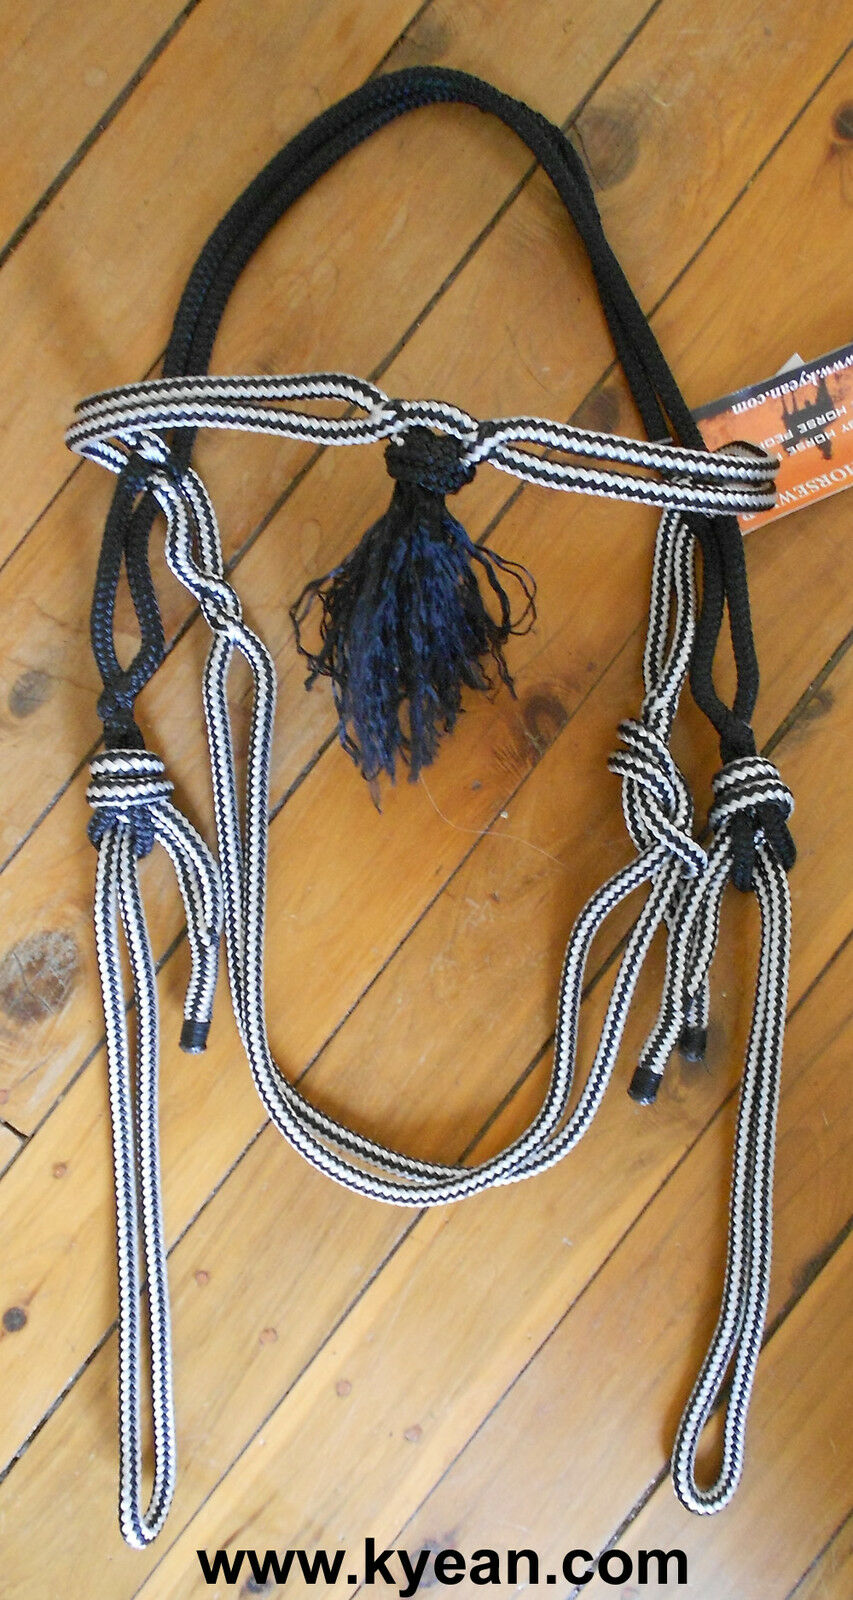 PROFESSIONALLY MADE ROPE BRIDLE HEADS with TASSEL COB FULL SIZE